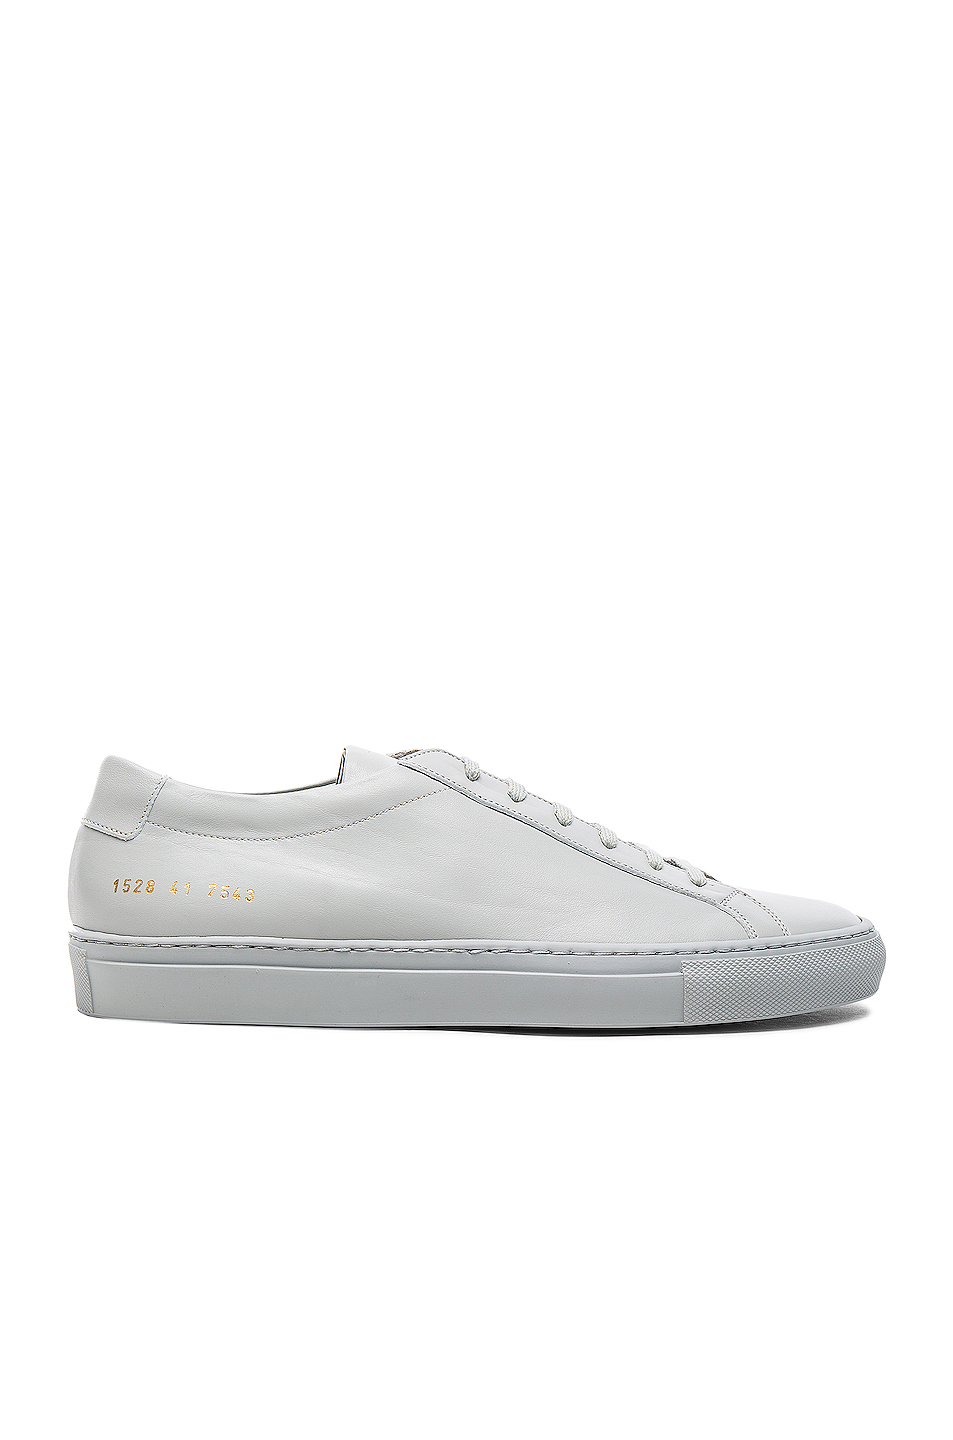 Common Projects Original Leather Achilles Low in Gray